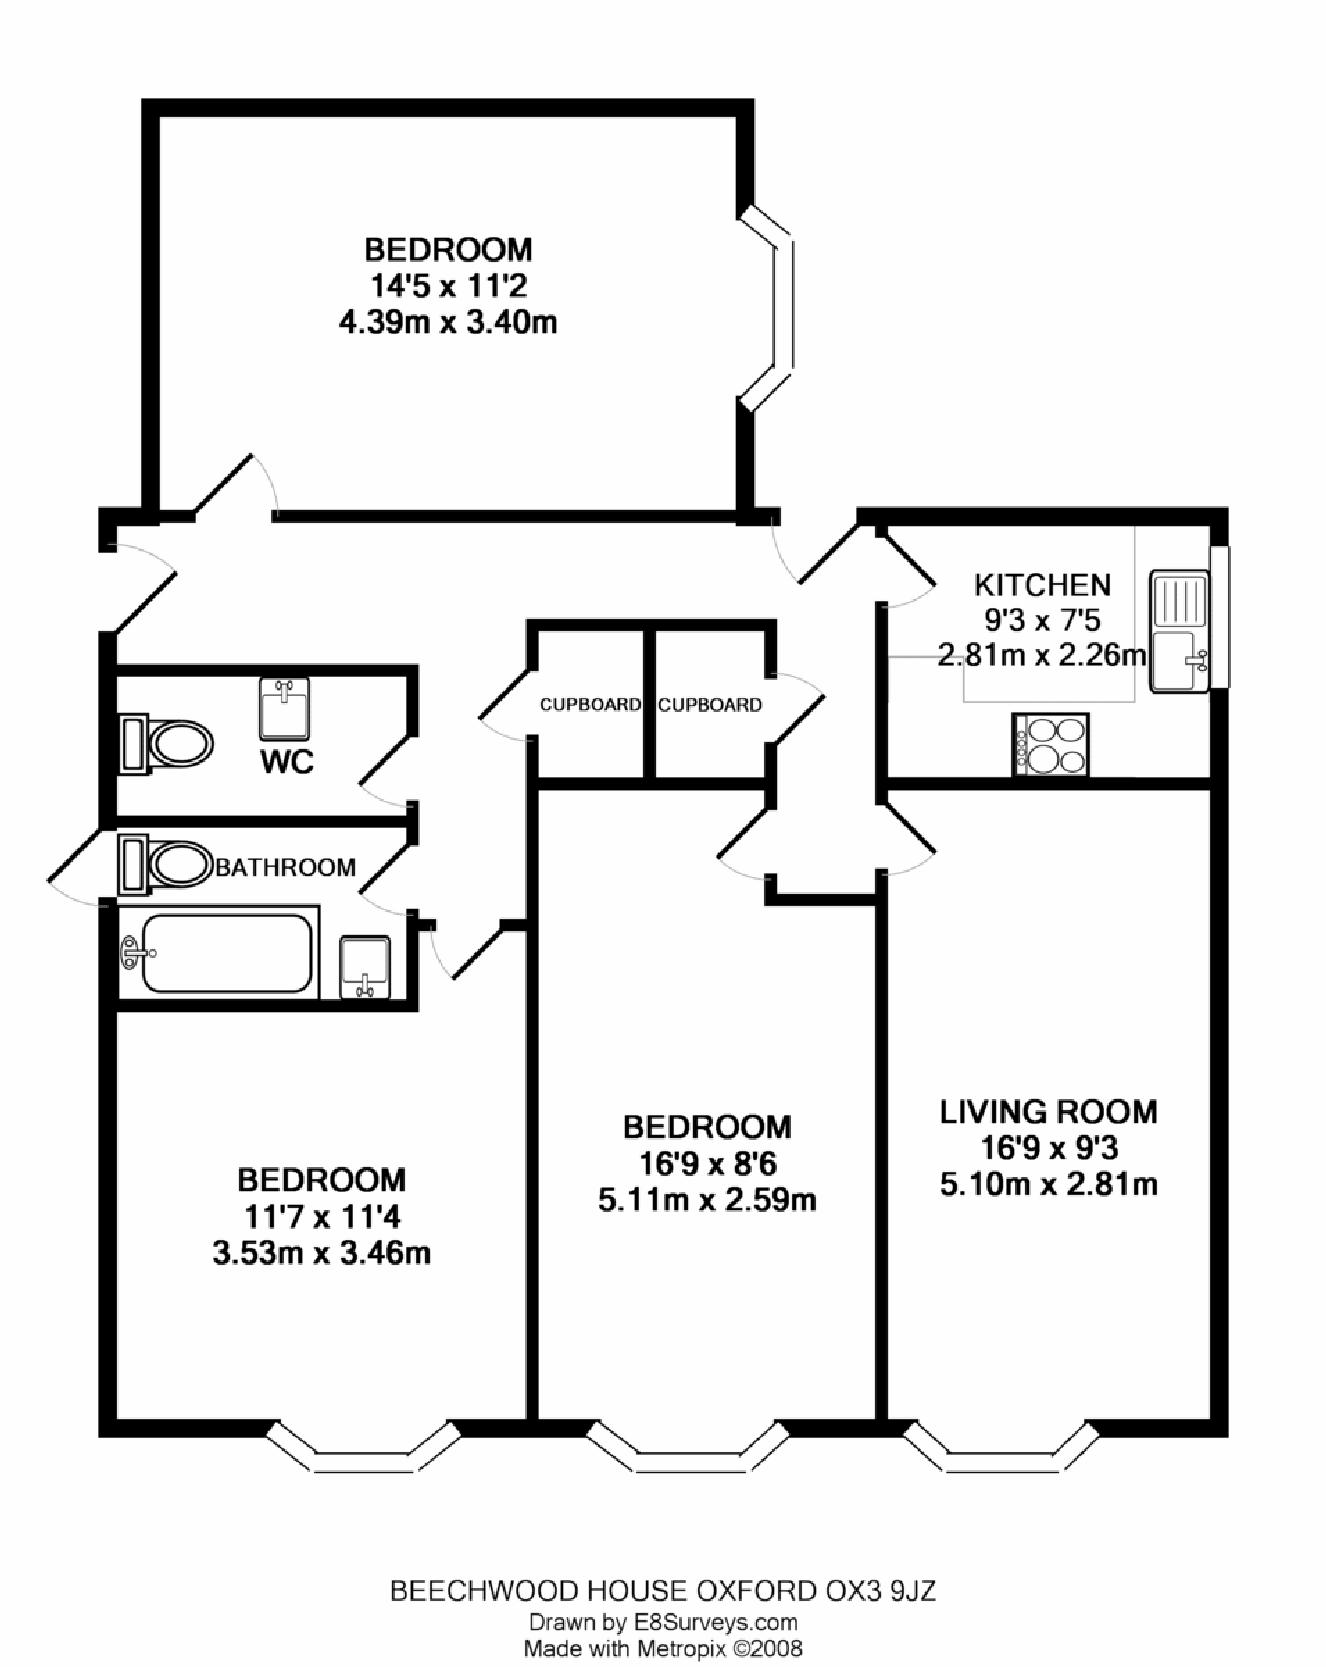 Beechwood house headington ox3 ref 25012 oxford for 3 room flat floor plan